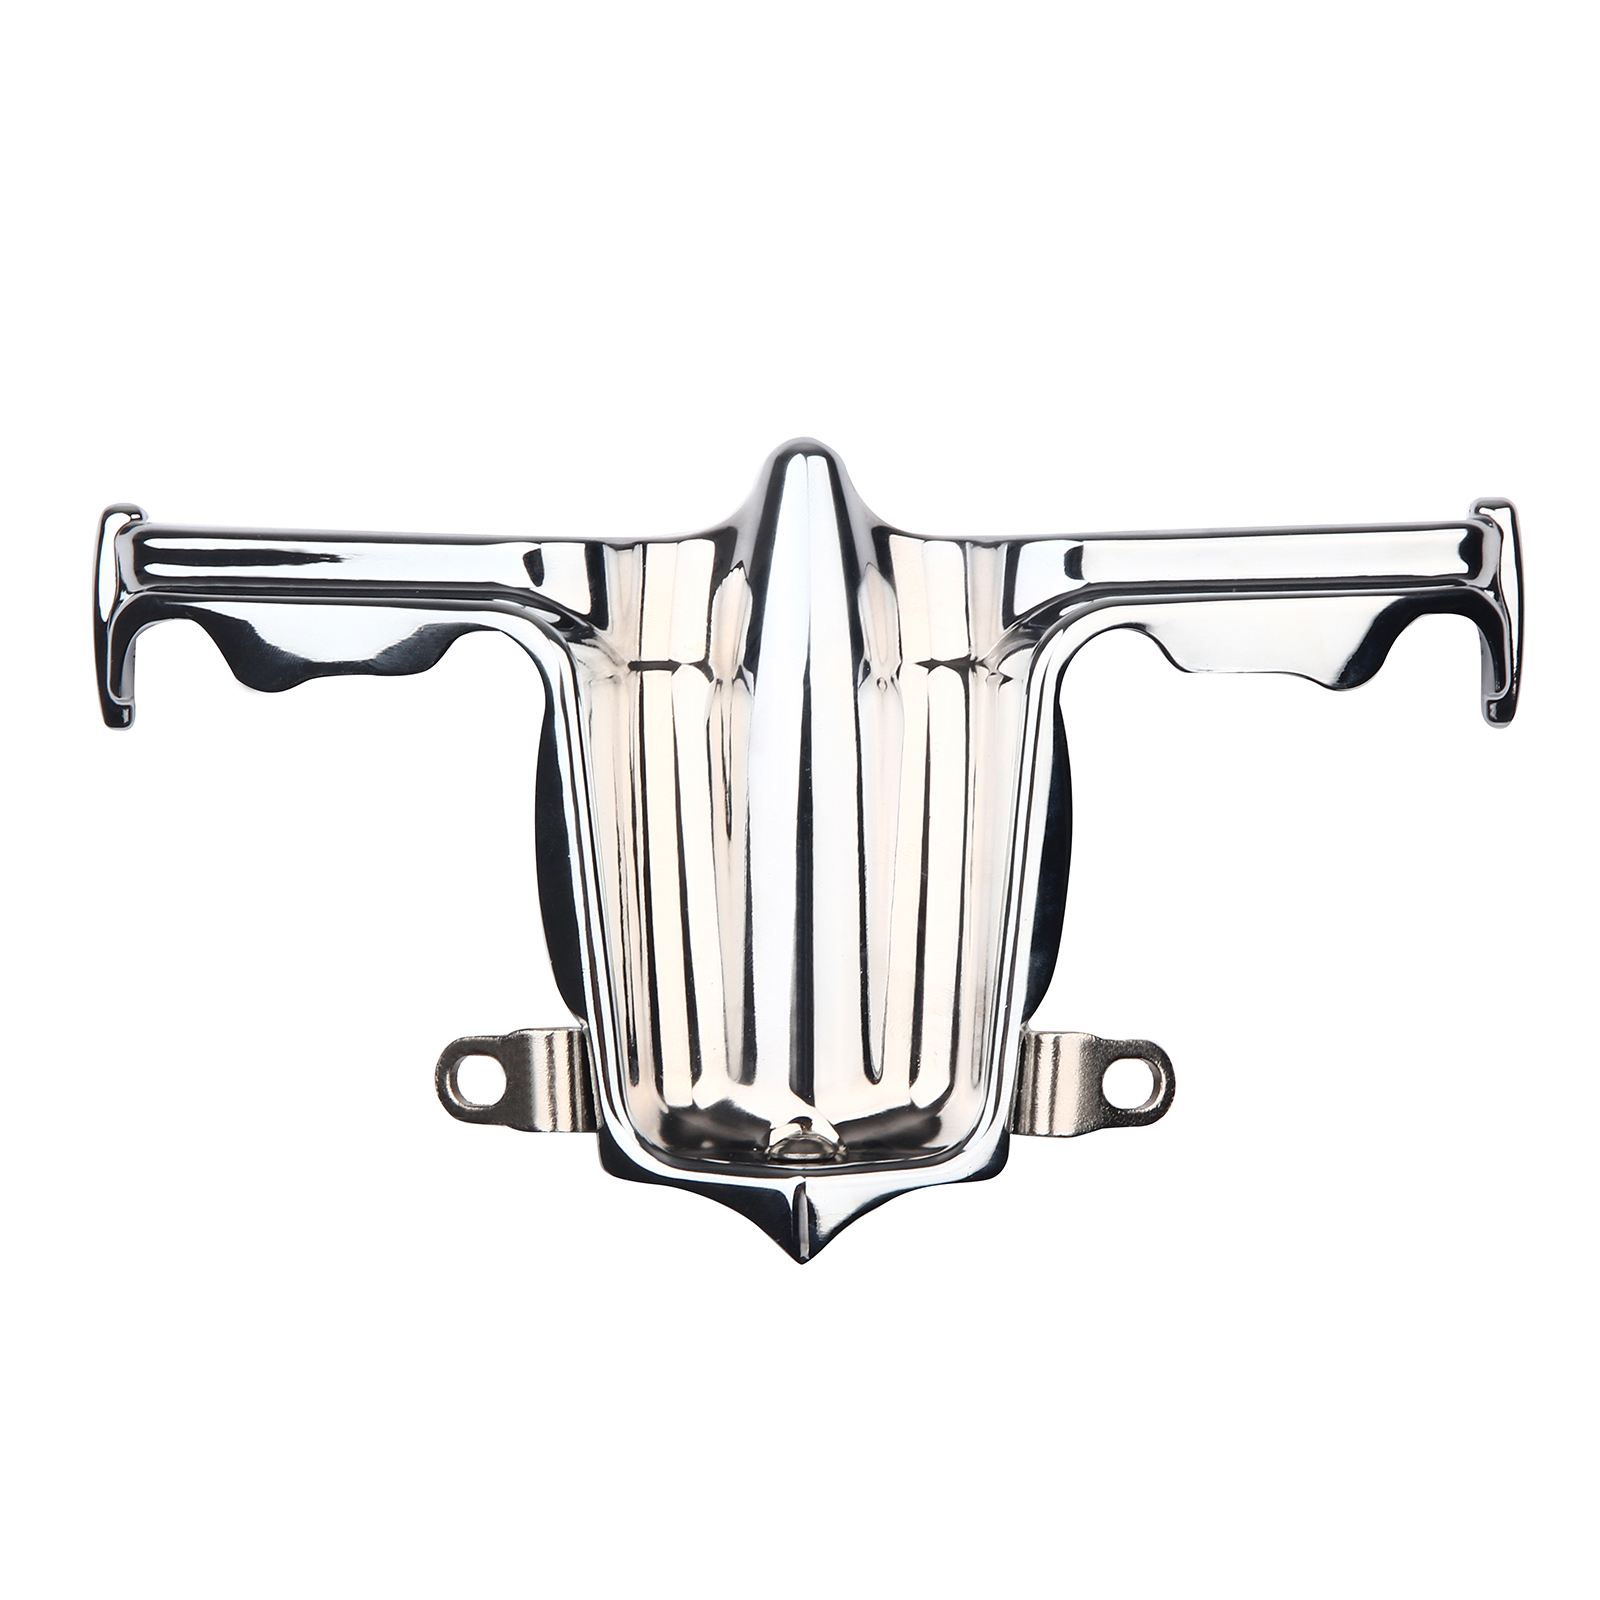 Chrome Tappet / Lifter Block Accent Cover for Harley Twin